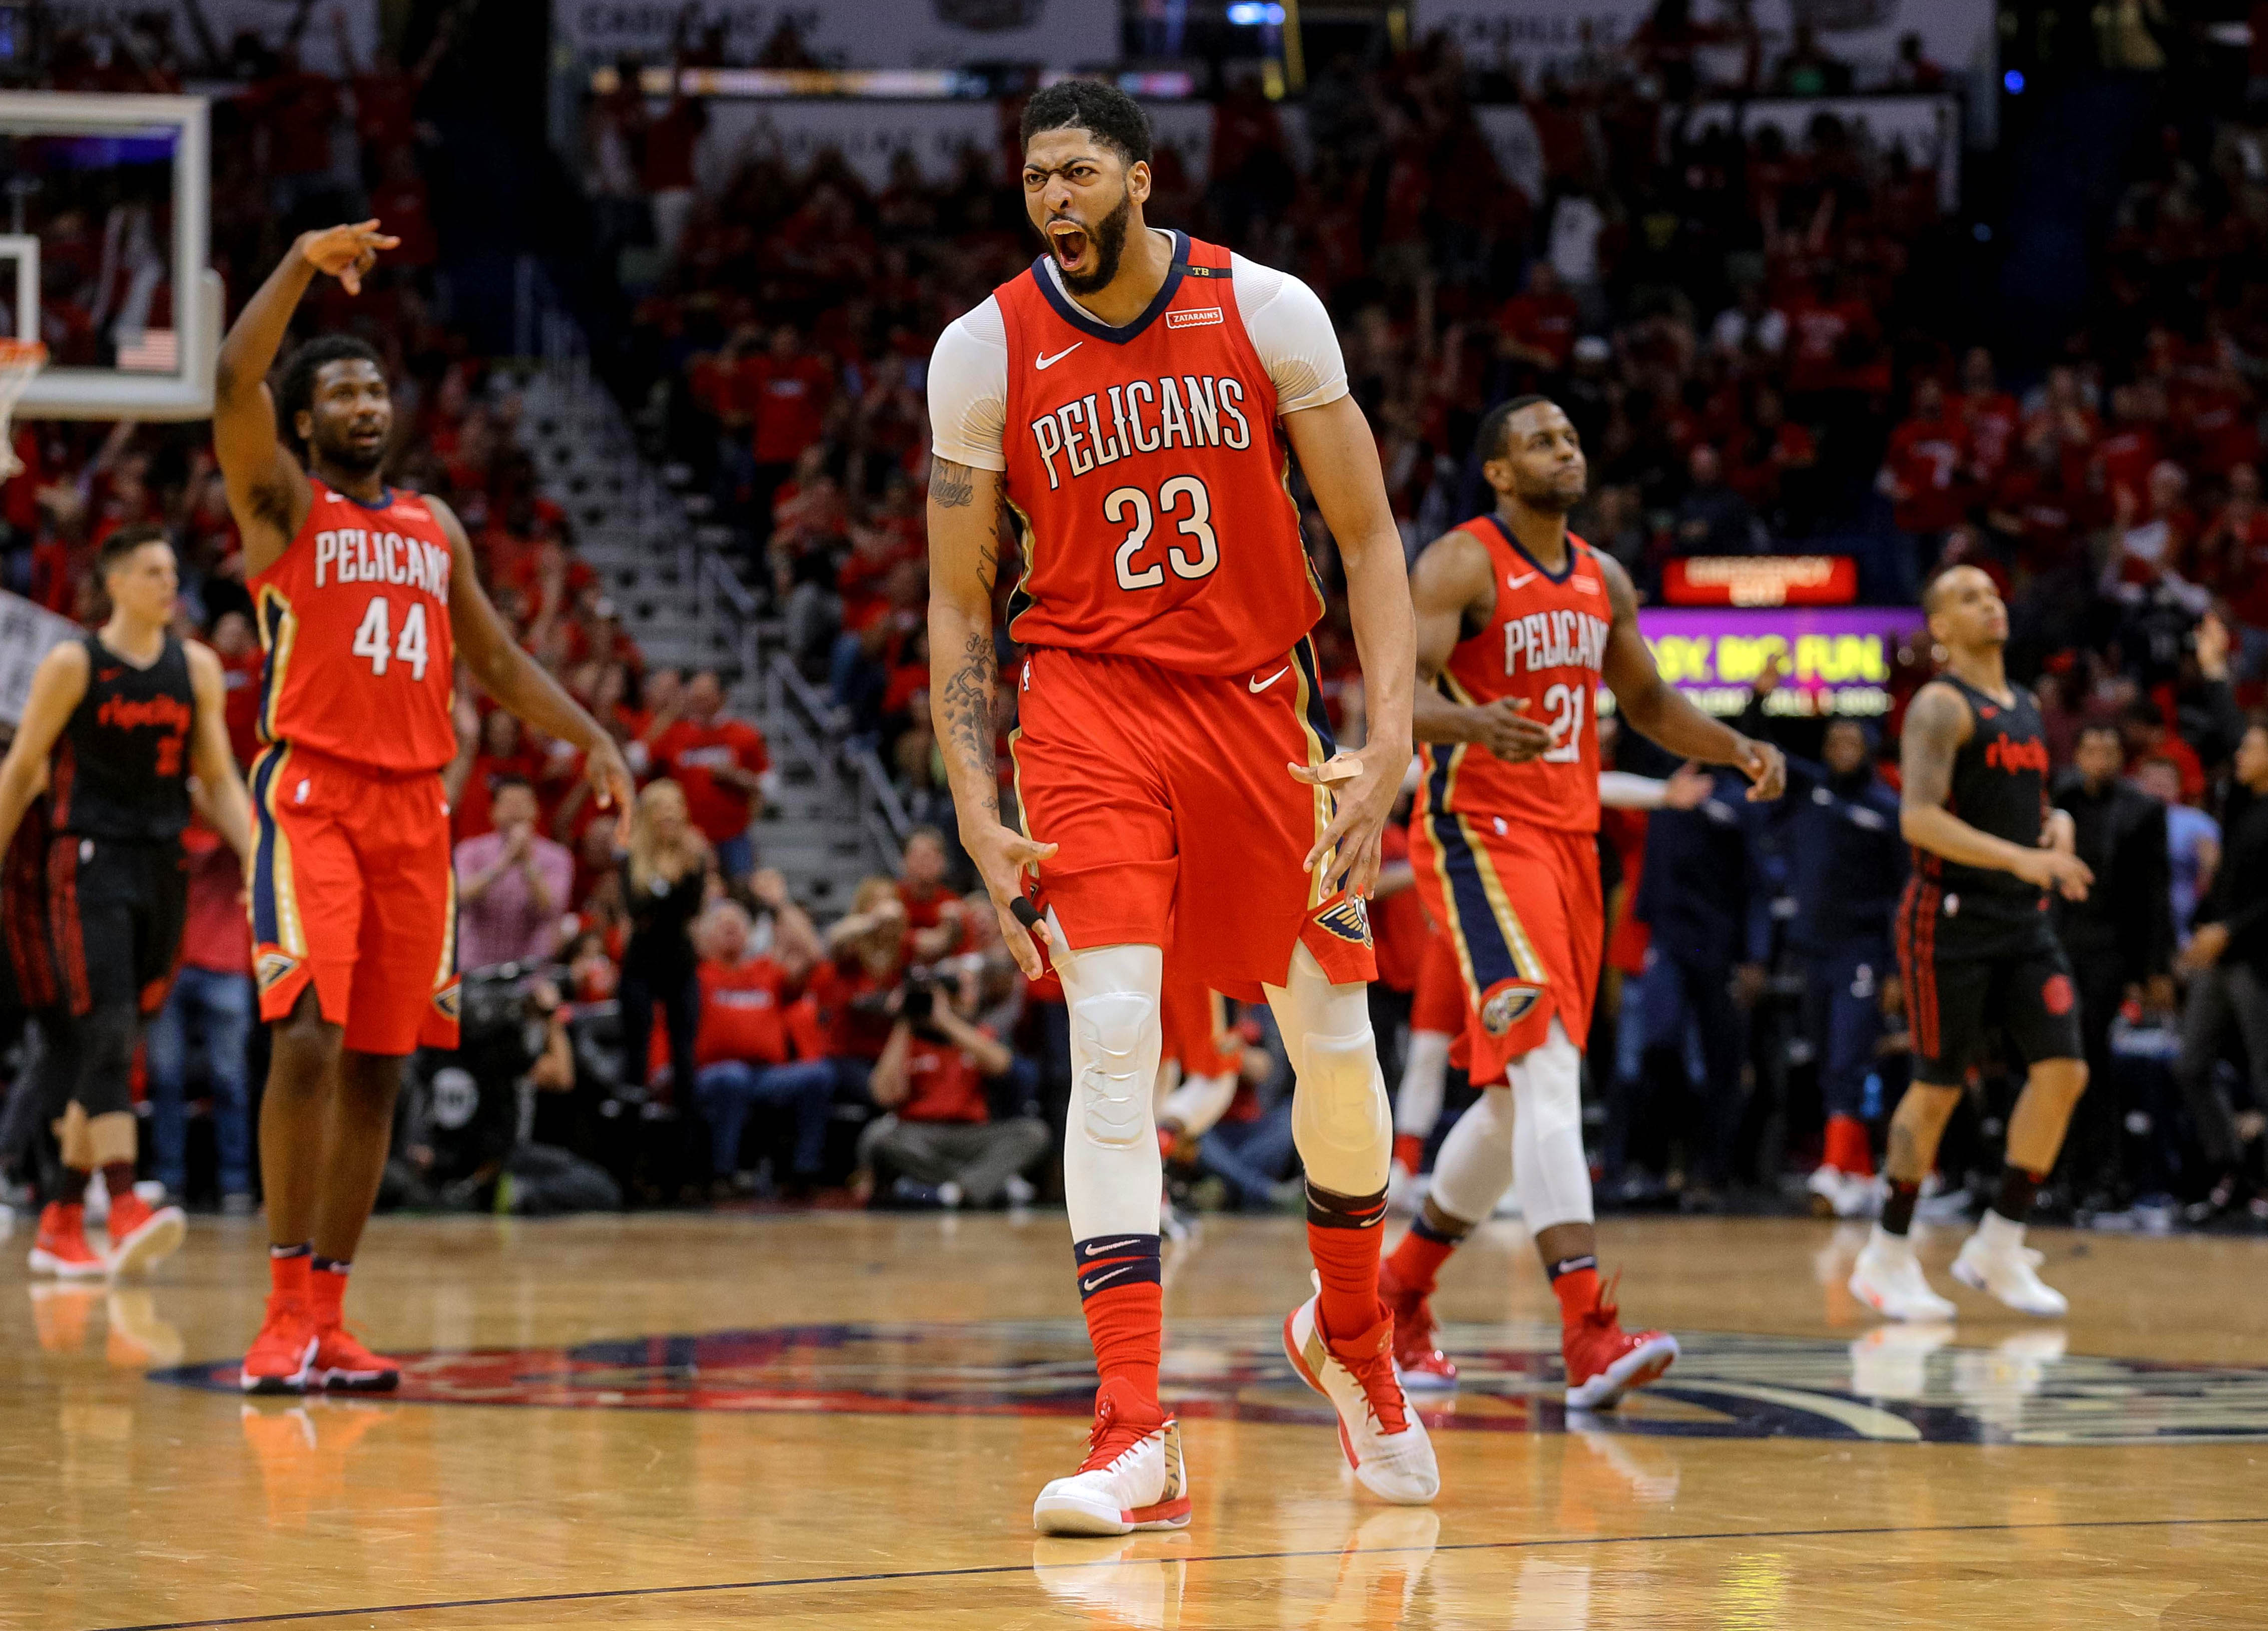 The Pelicans are a band of misfits coalescing into a beautiful juggernaut